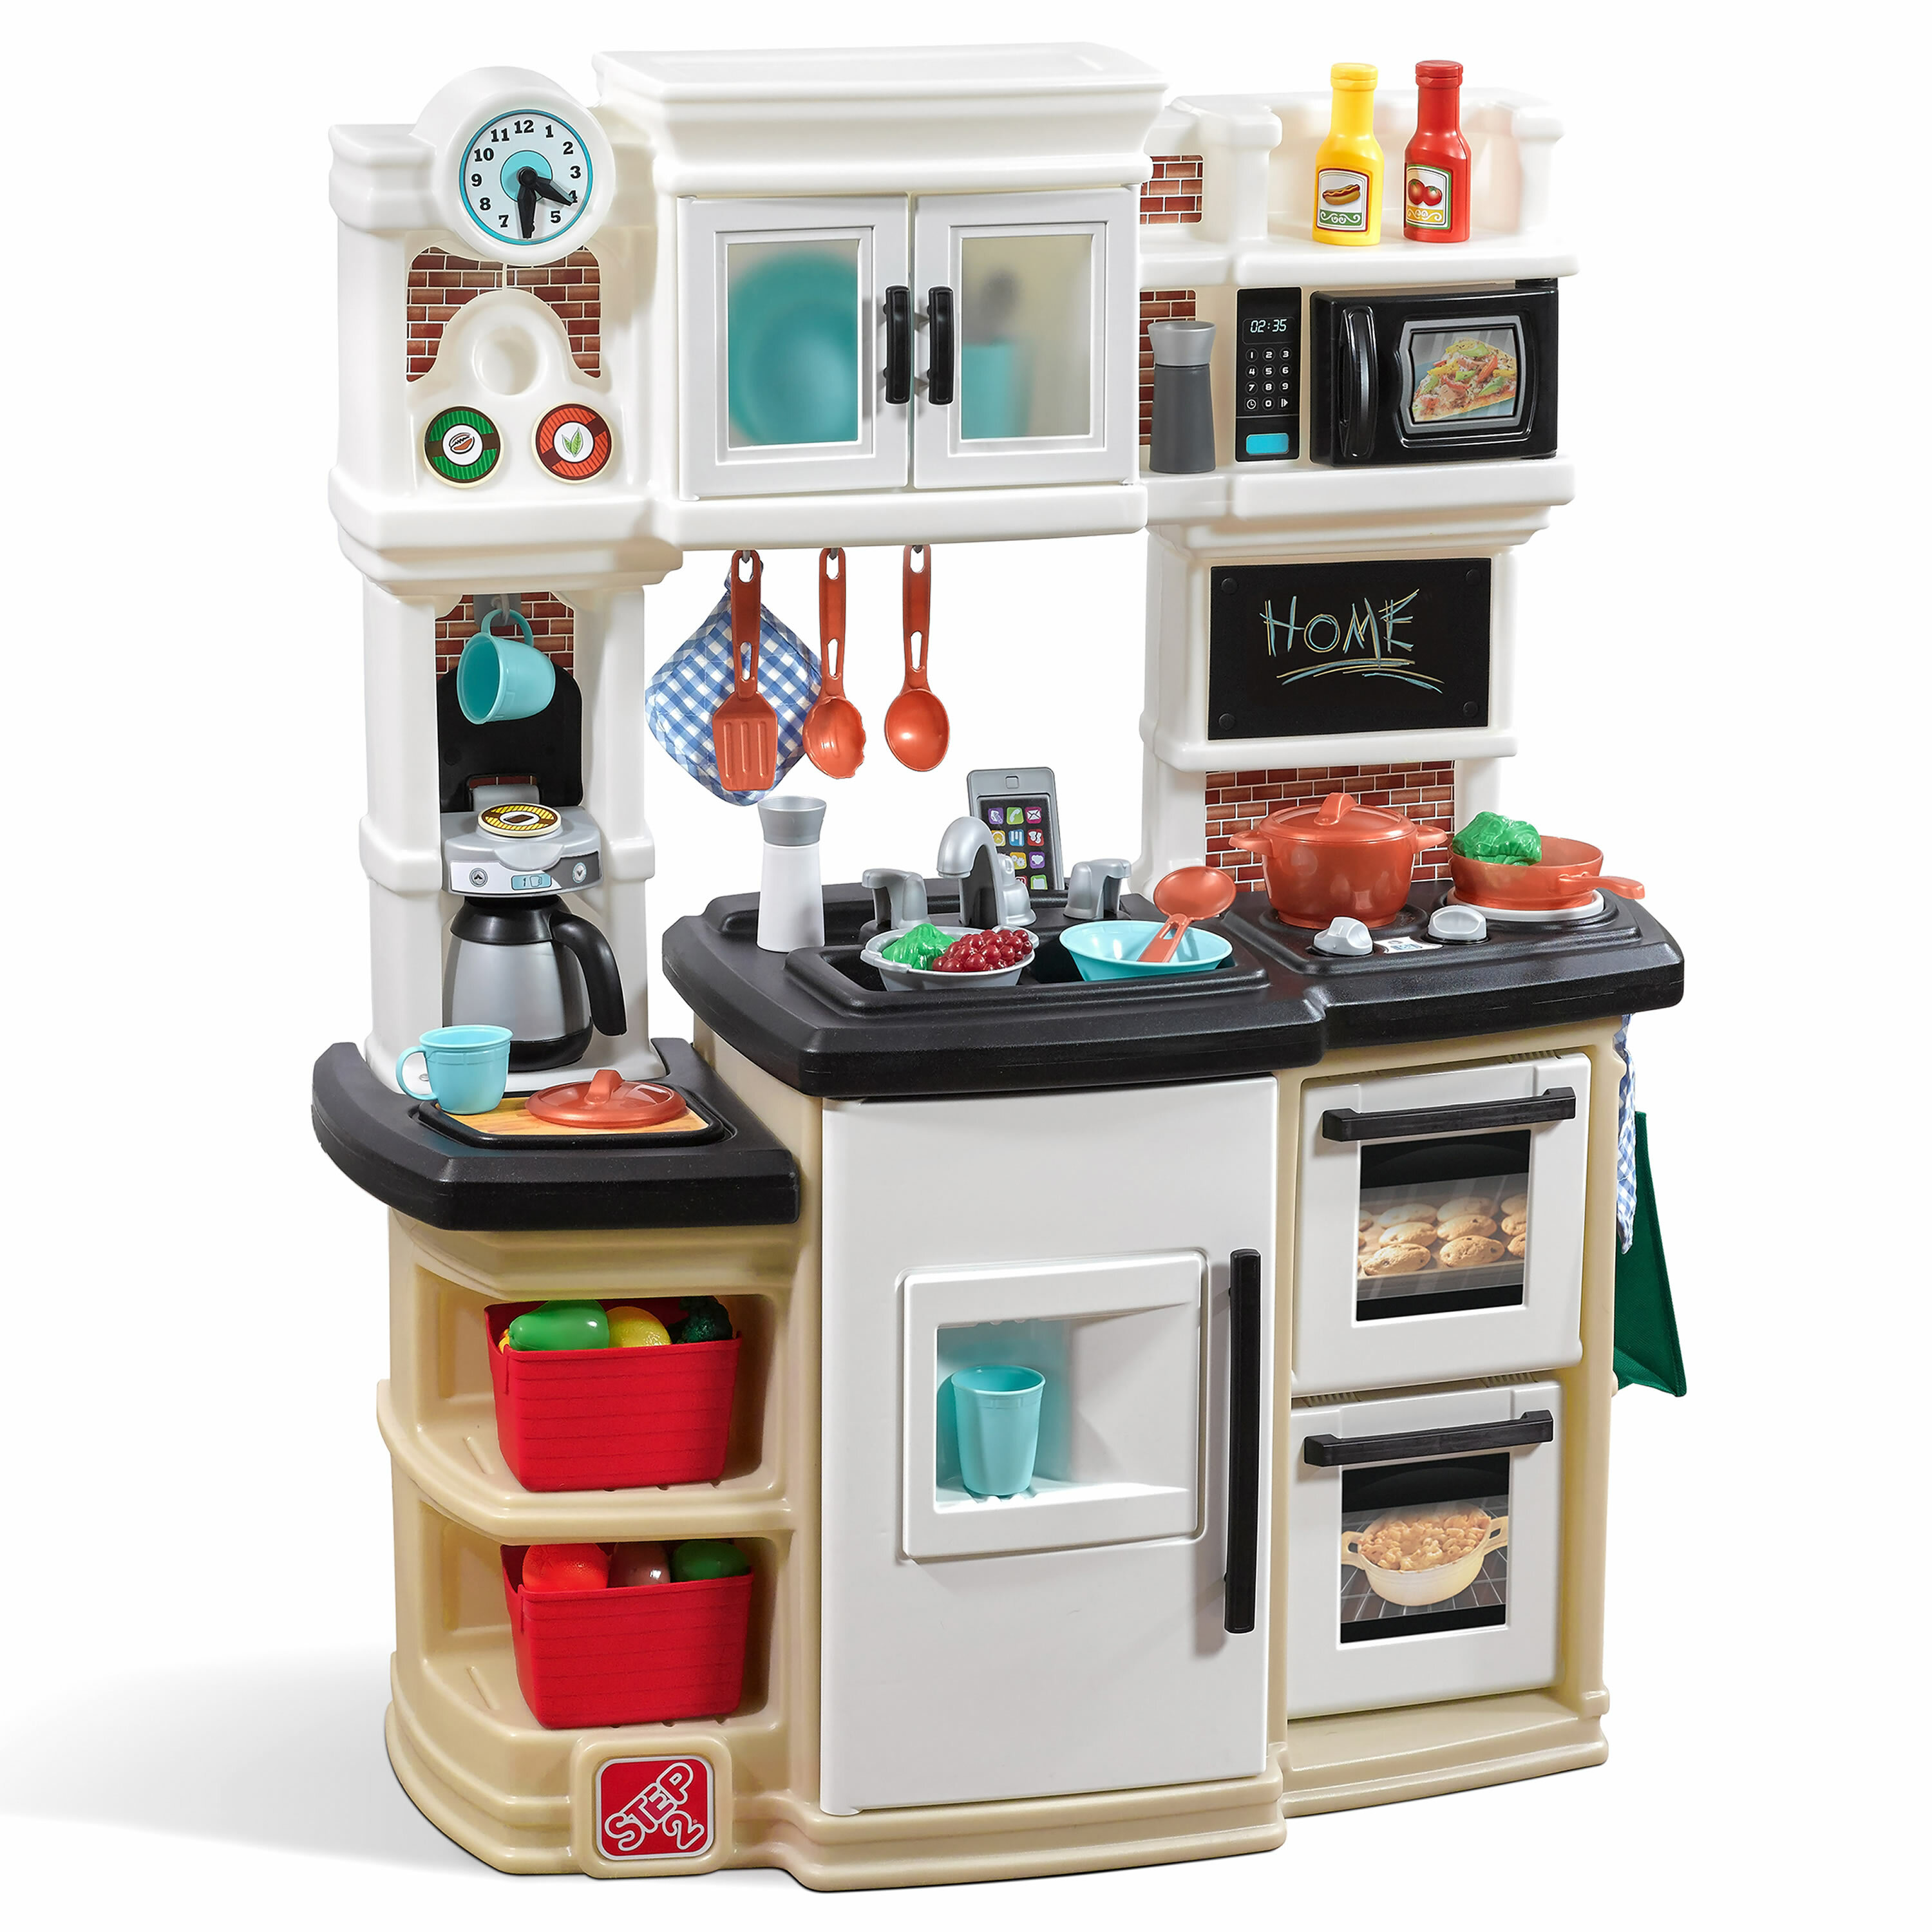 Step2 Great Gourmet Kitchen Set & Reviews | Wayfair on top best kitchens, top movie kitchens, new updated kitchens, apron sinks for kitchens, top country kitchens, top dream kitchens,